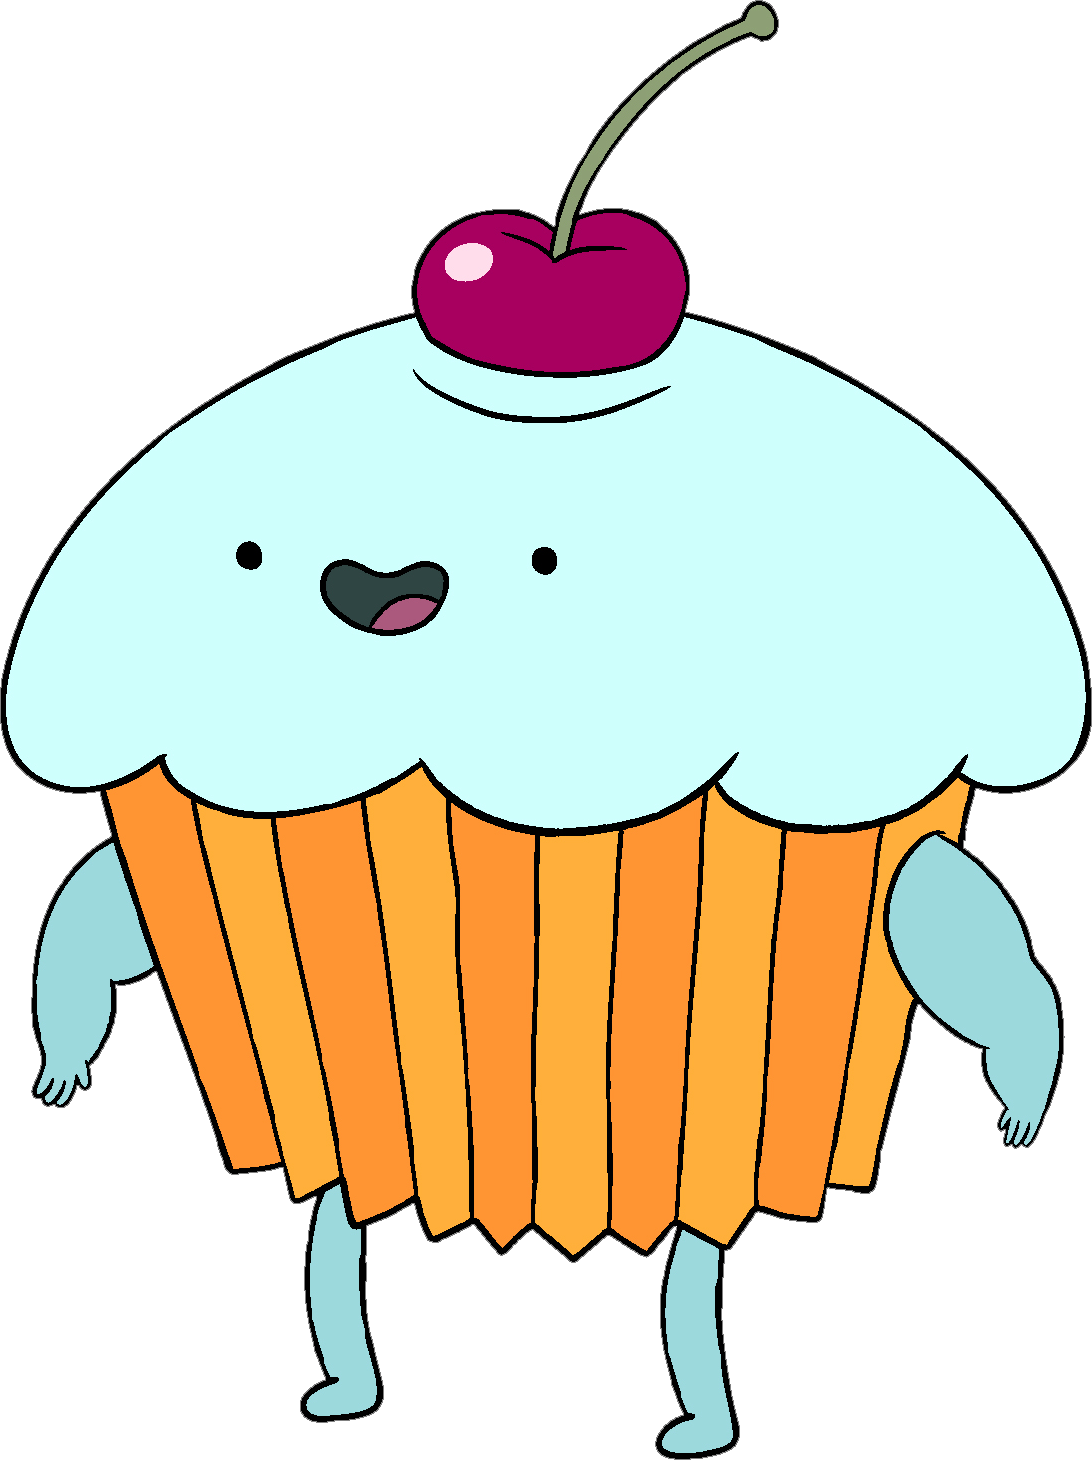 Adventure time png. Image candy person wiki